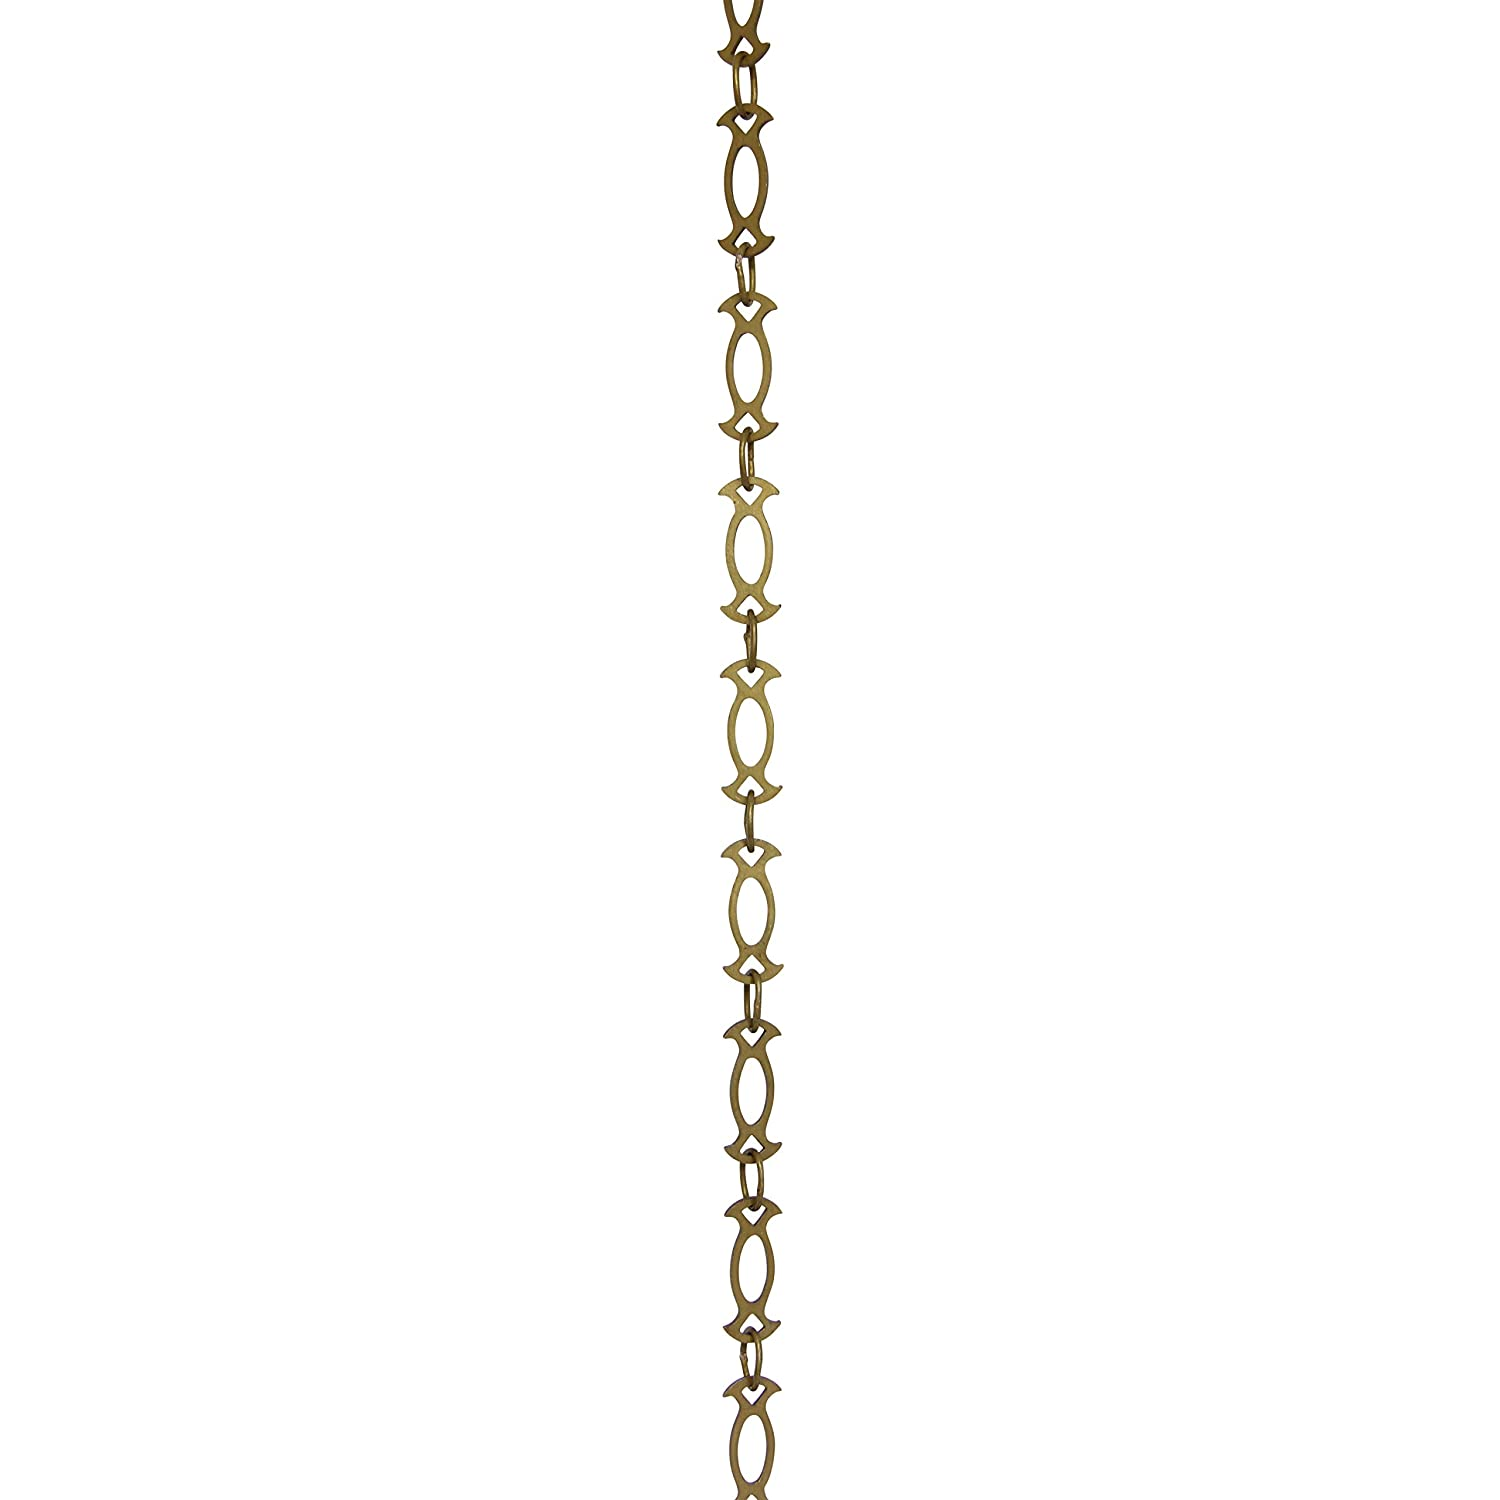 RCH Hardware CH-47-AD-3 Lighting Chain Acid Dipped